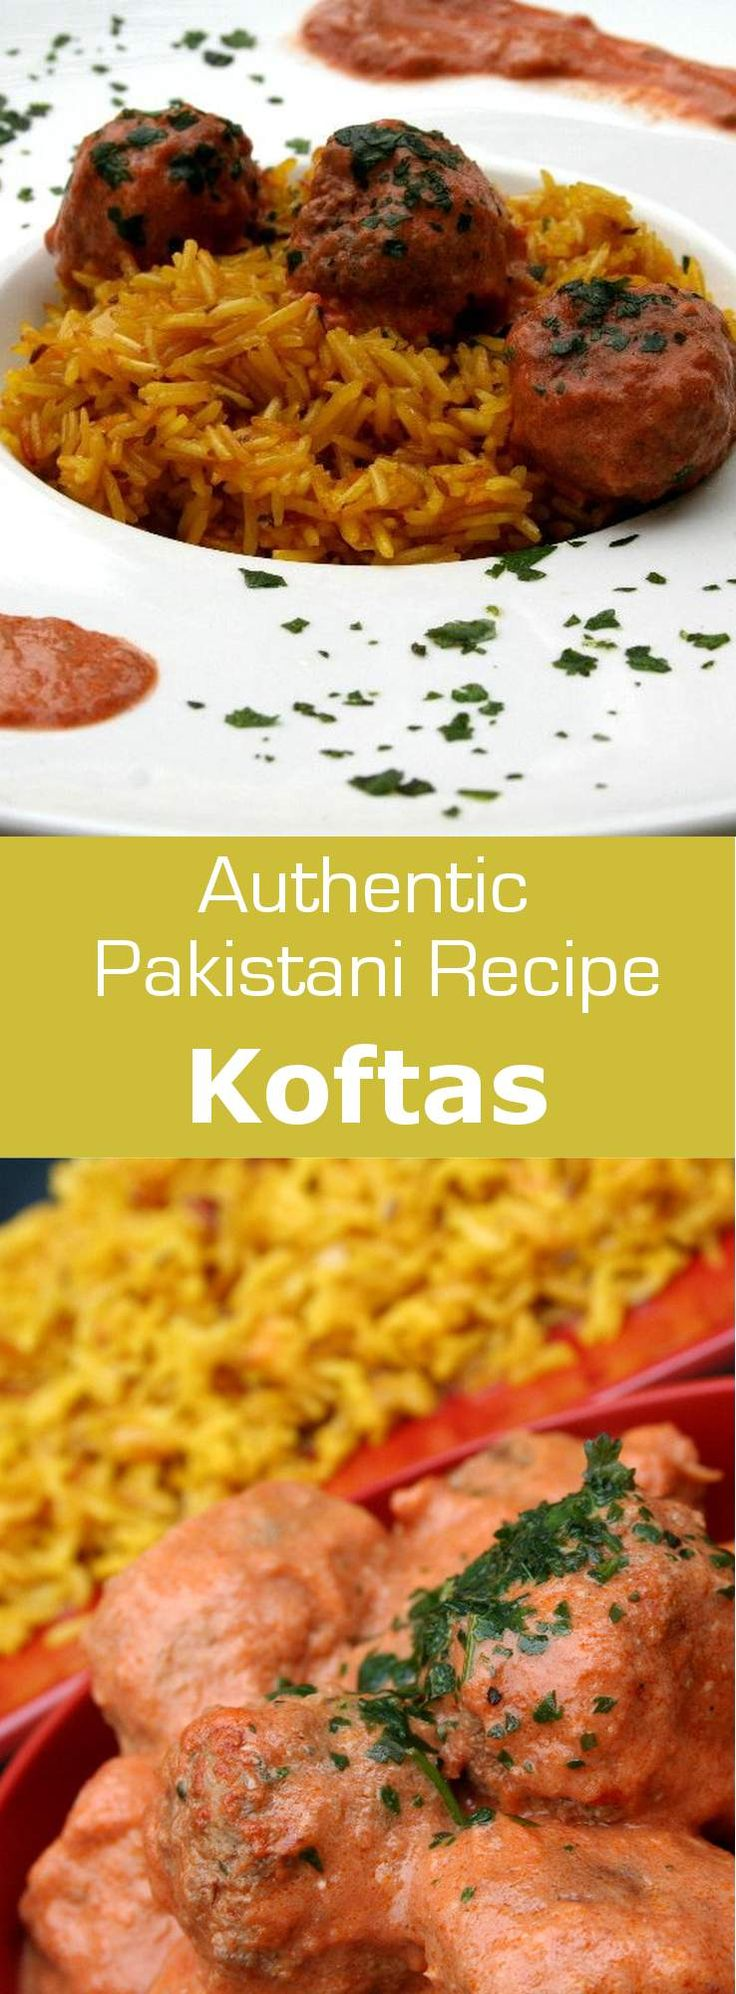 Koftas are Pakistanis meatballs that combine the aromas of saffron, garam masala, and cumin. #meatball #pakistan